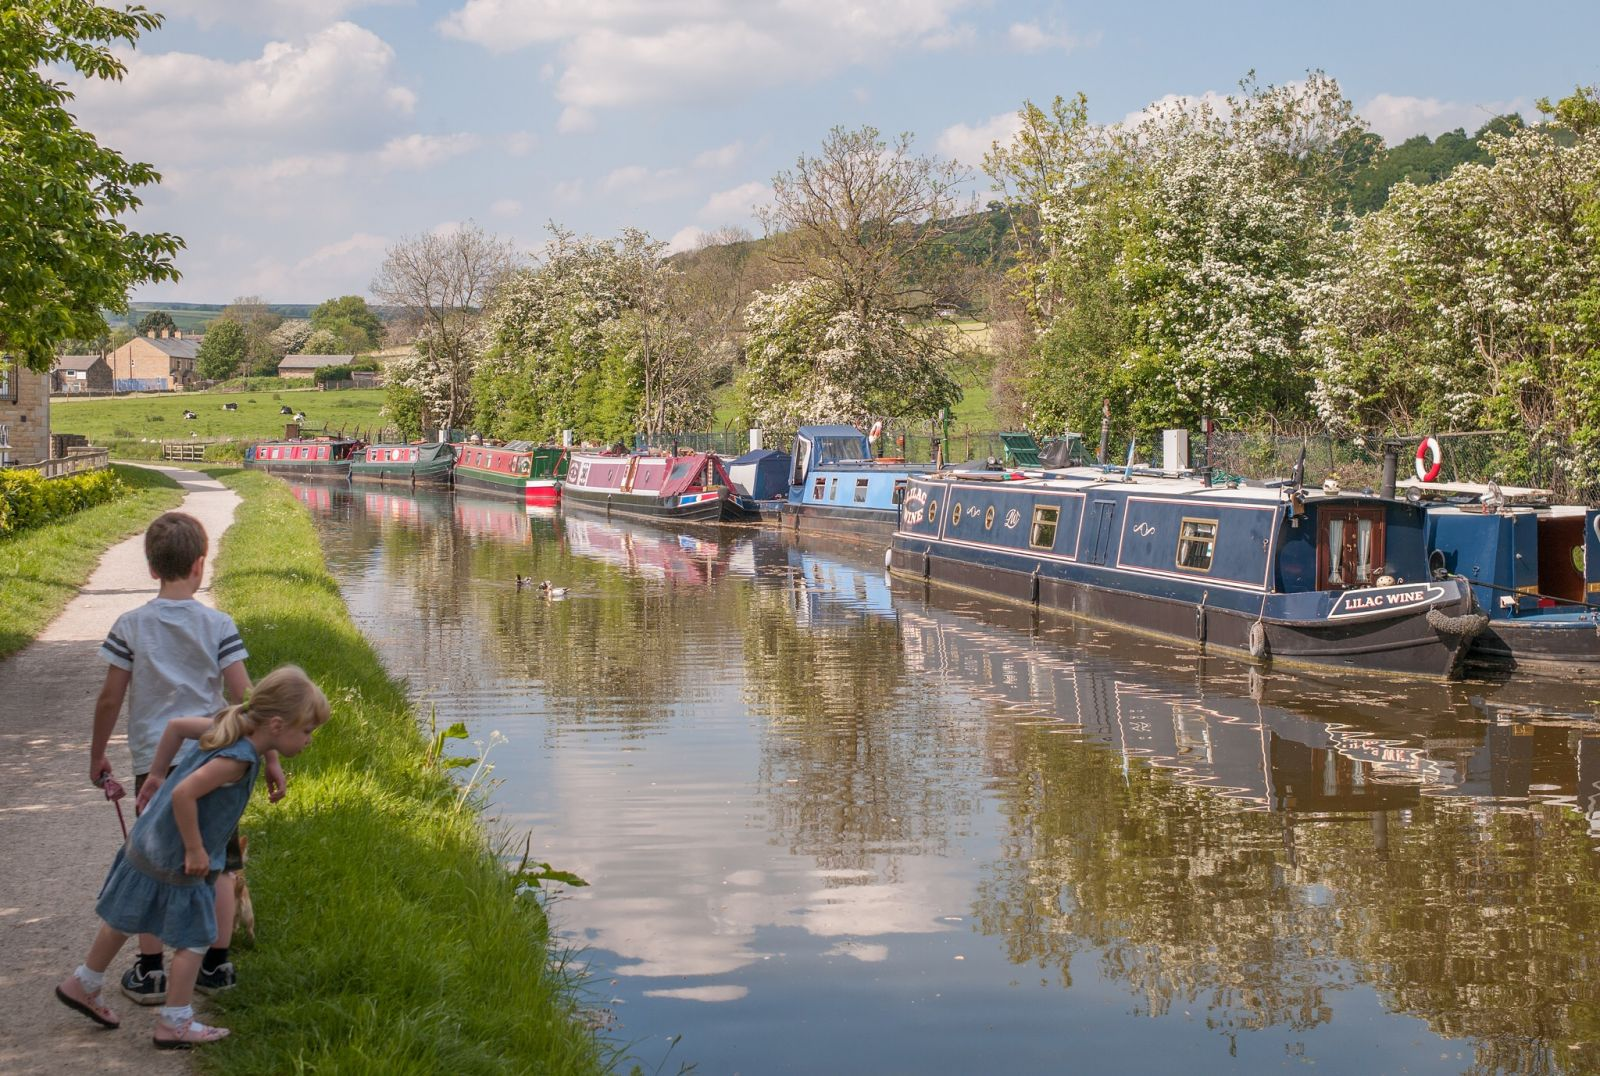 Leeds-Liverpool Canal at Micklethwaite, UK